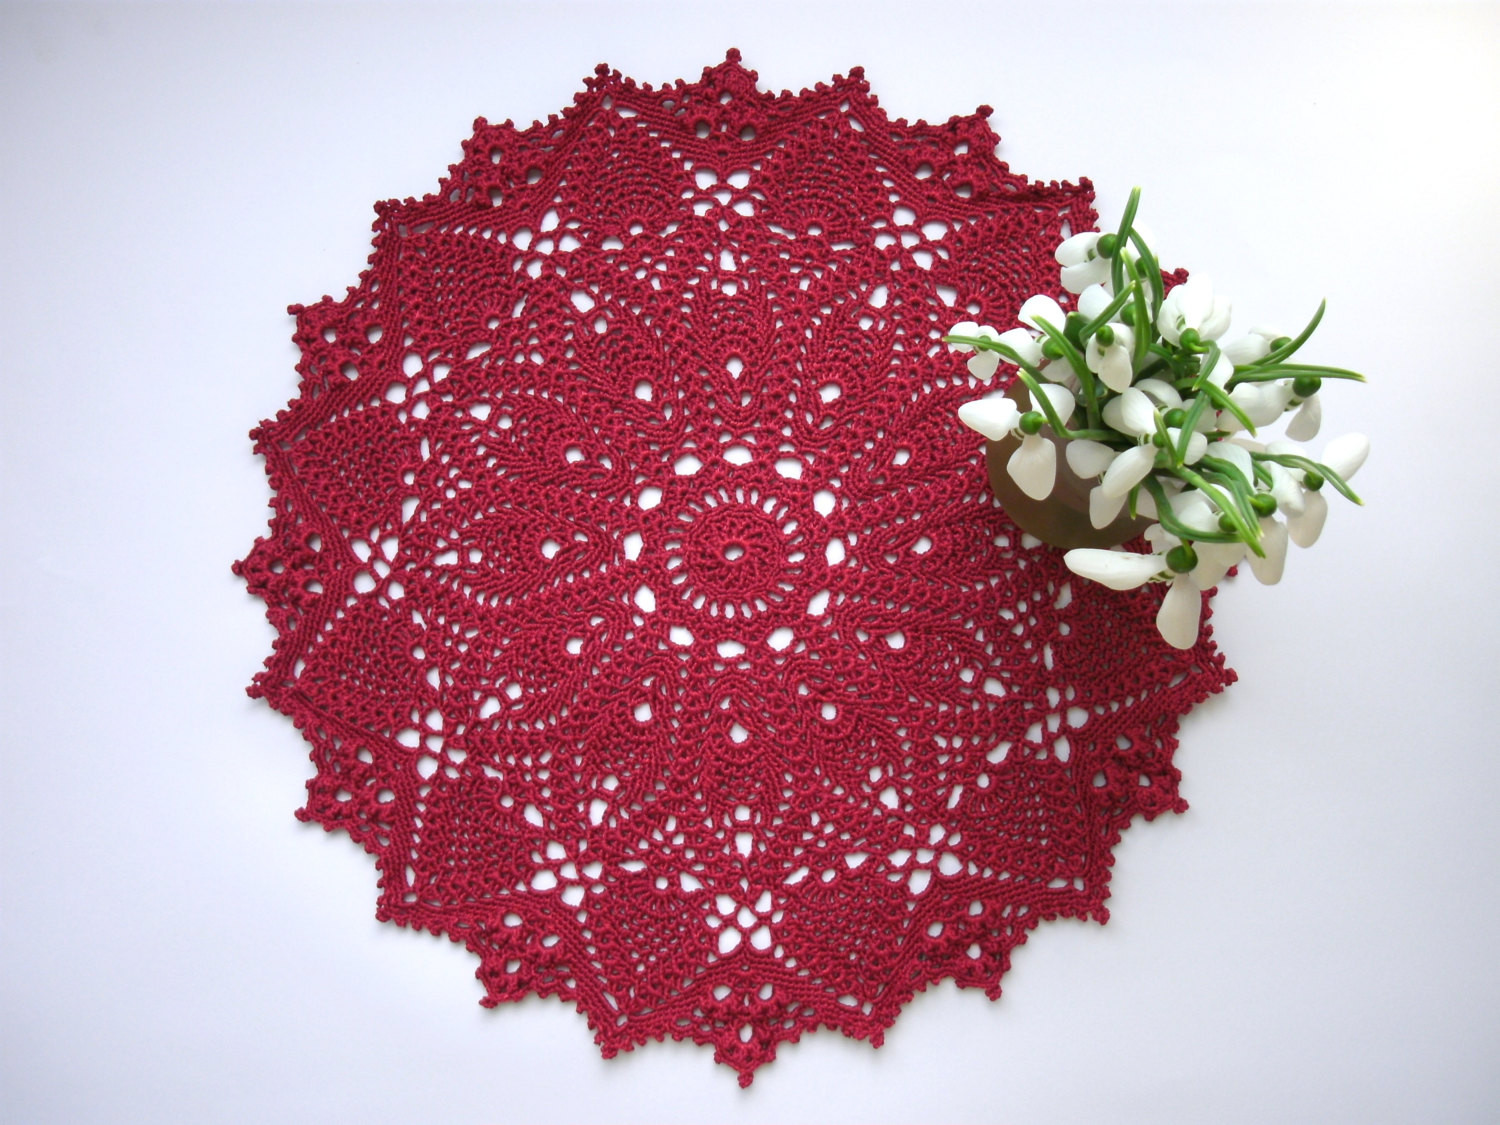 Red Doilies Luxury Red Crochet Doily 15 Inches Round Lace Doily by Of Luxury 43 Images Red Doilies